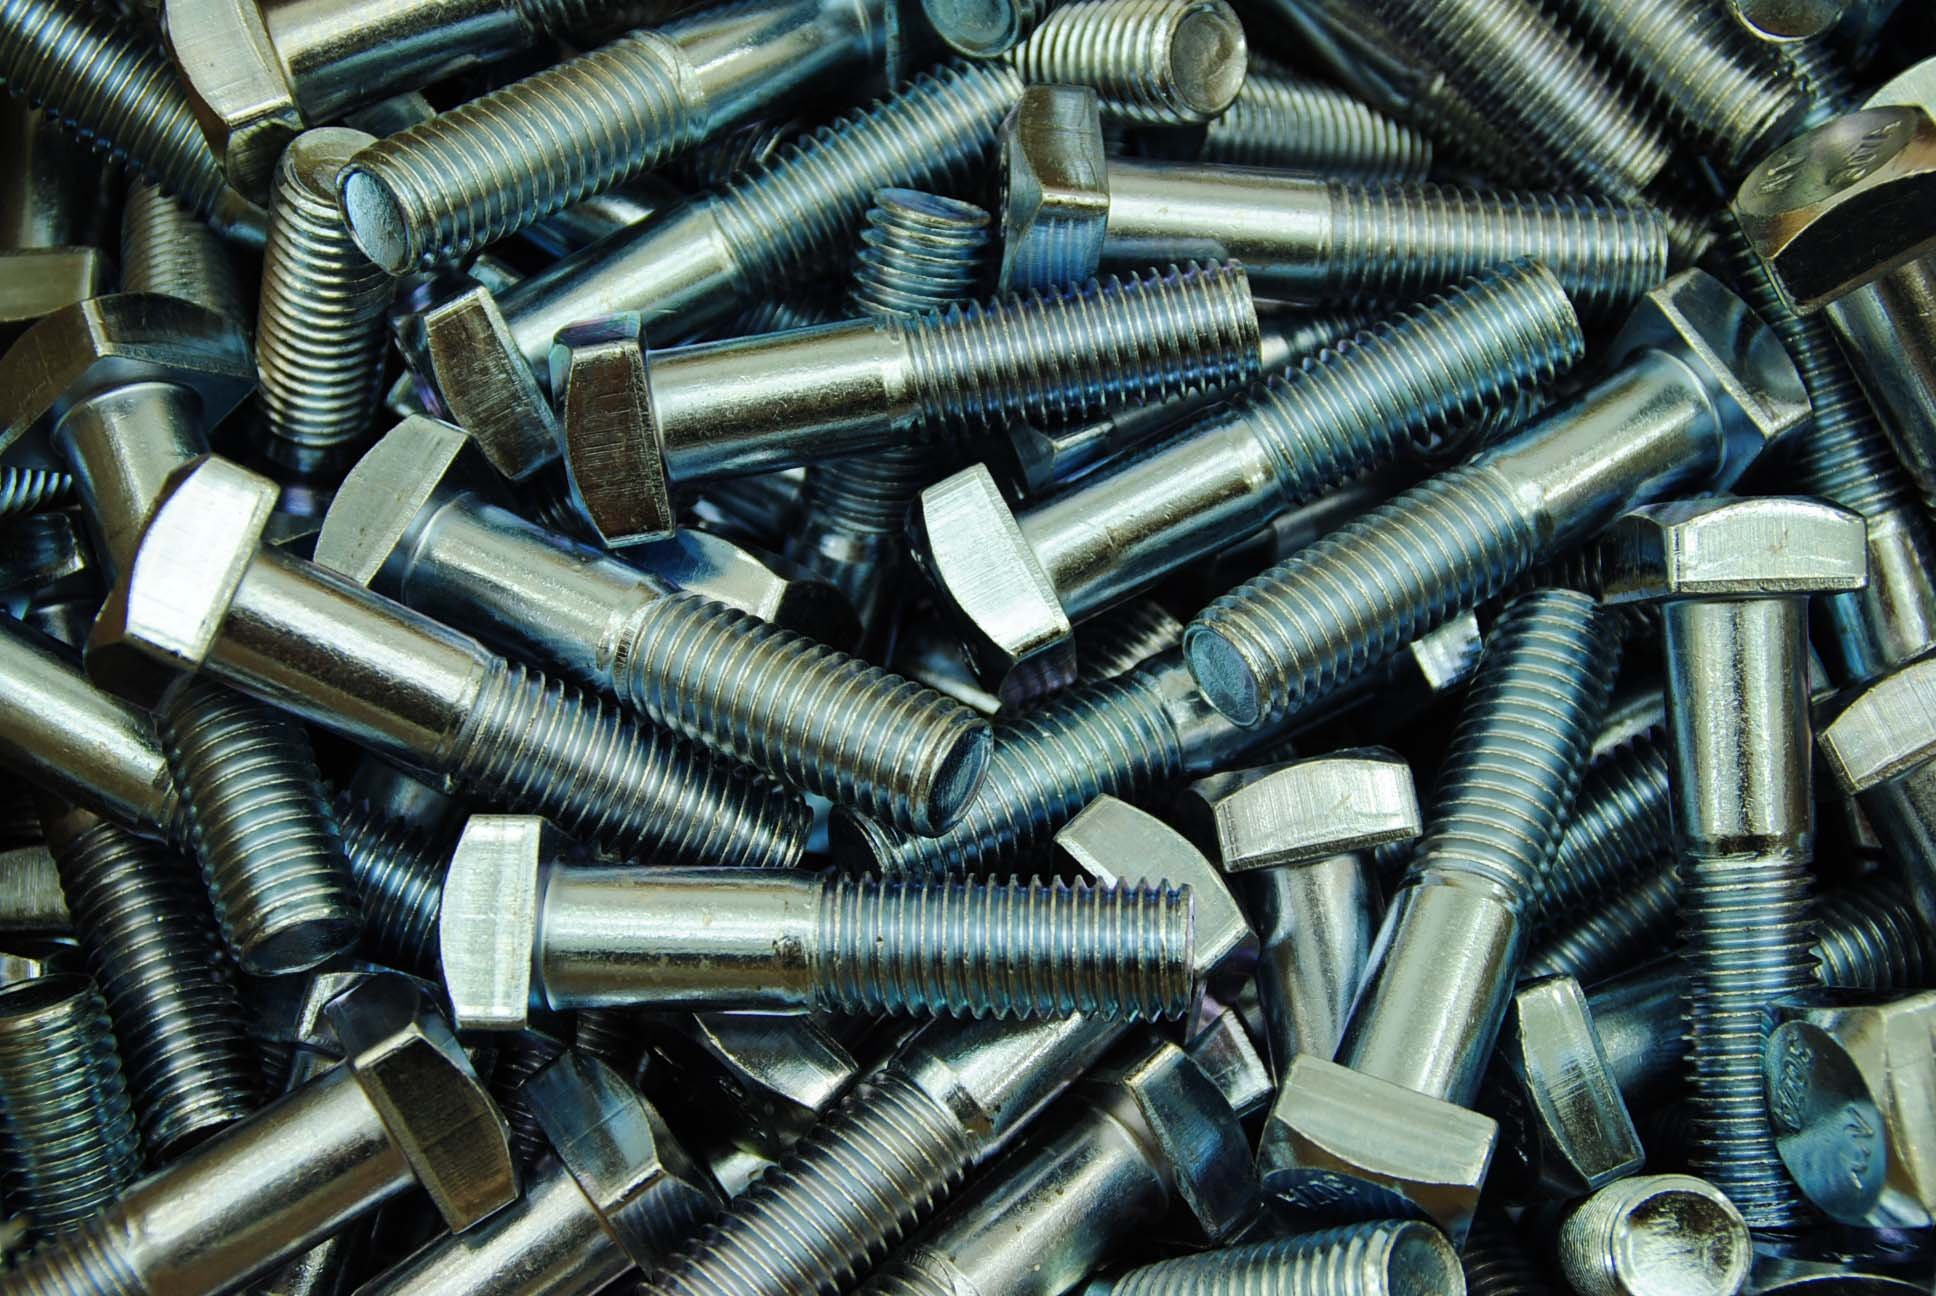 (20) Square Head 5/8-11 x 2-3/4'' Zinc Plated Bolts A307 15/16'' Sq by Lexar Industrial